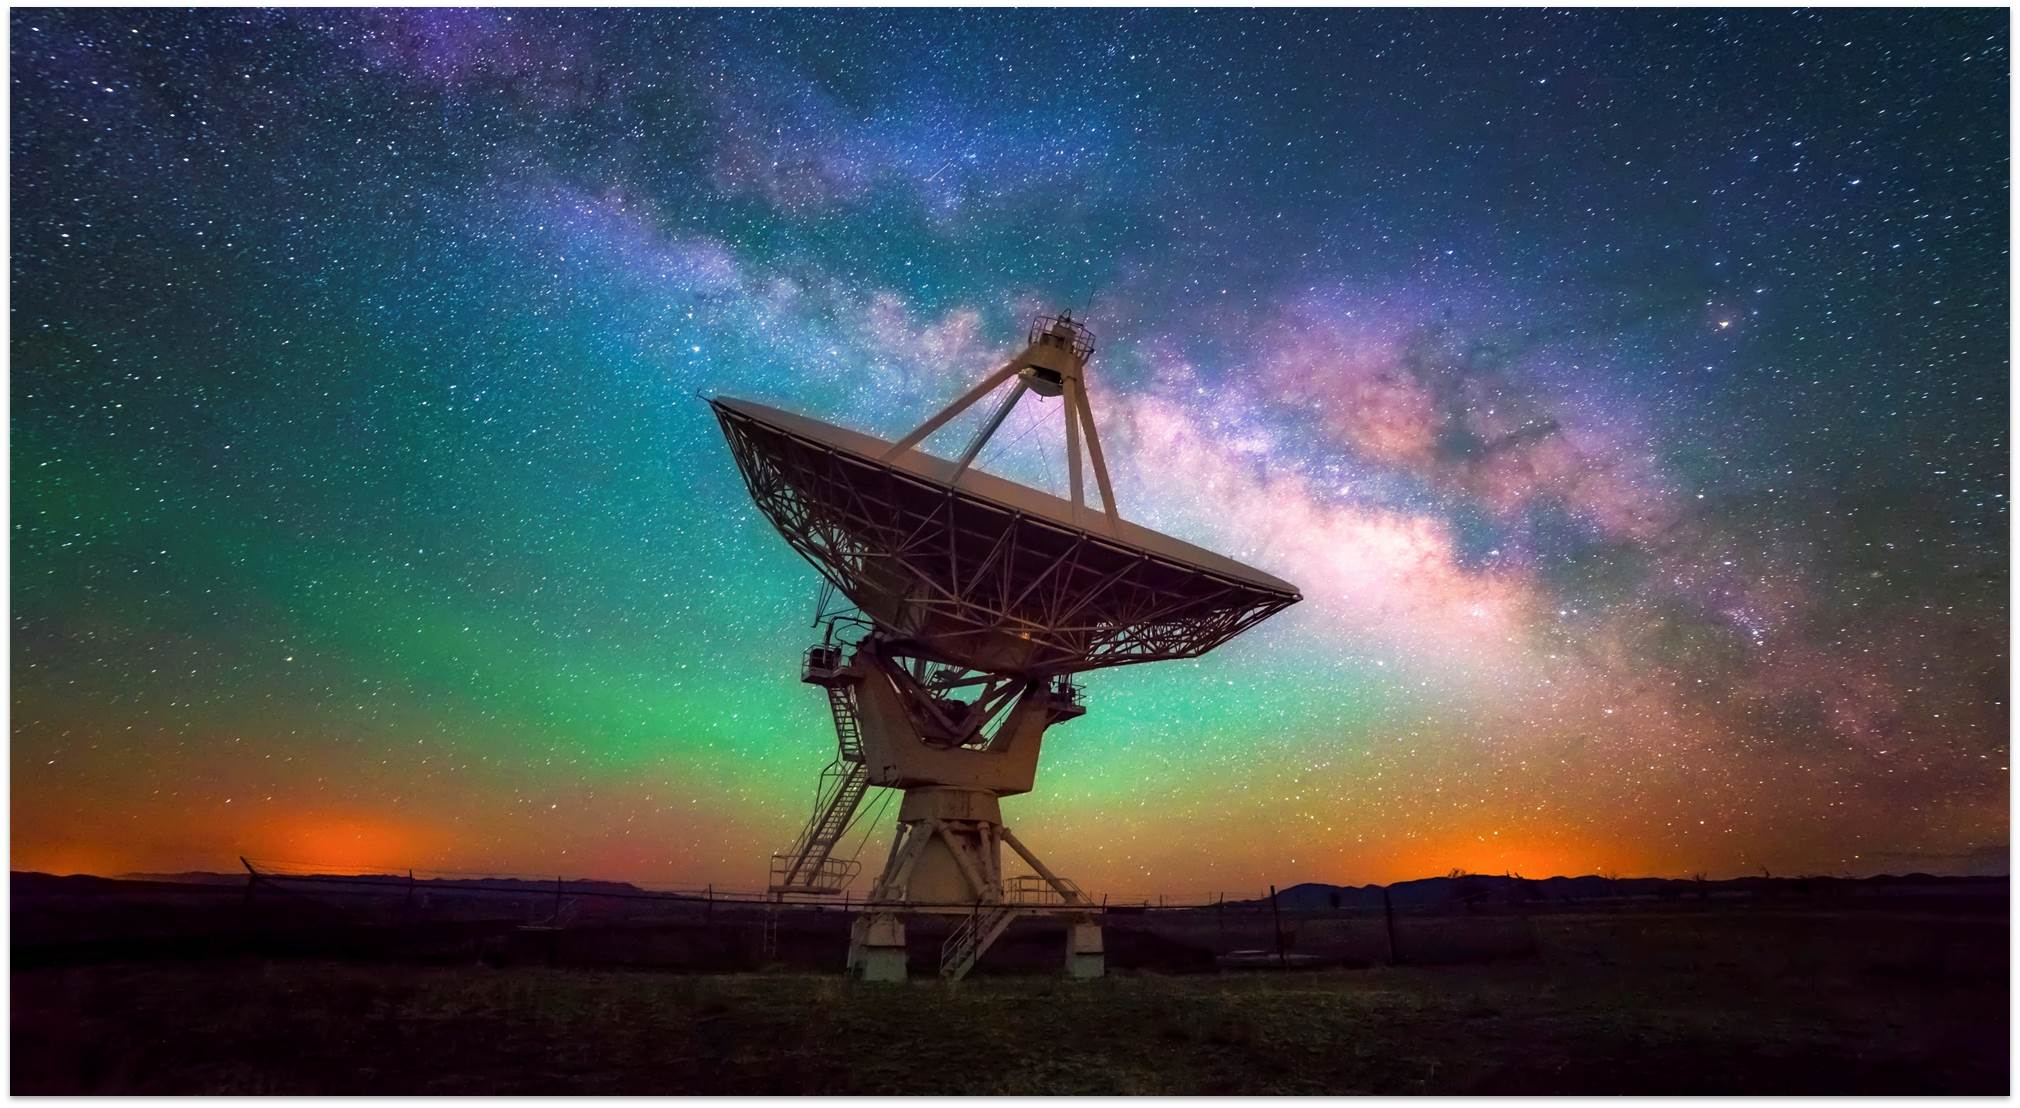 Signal dish in front of a starry, colorful sky